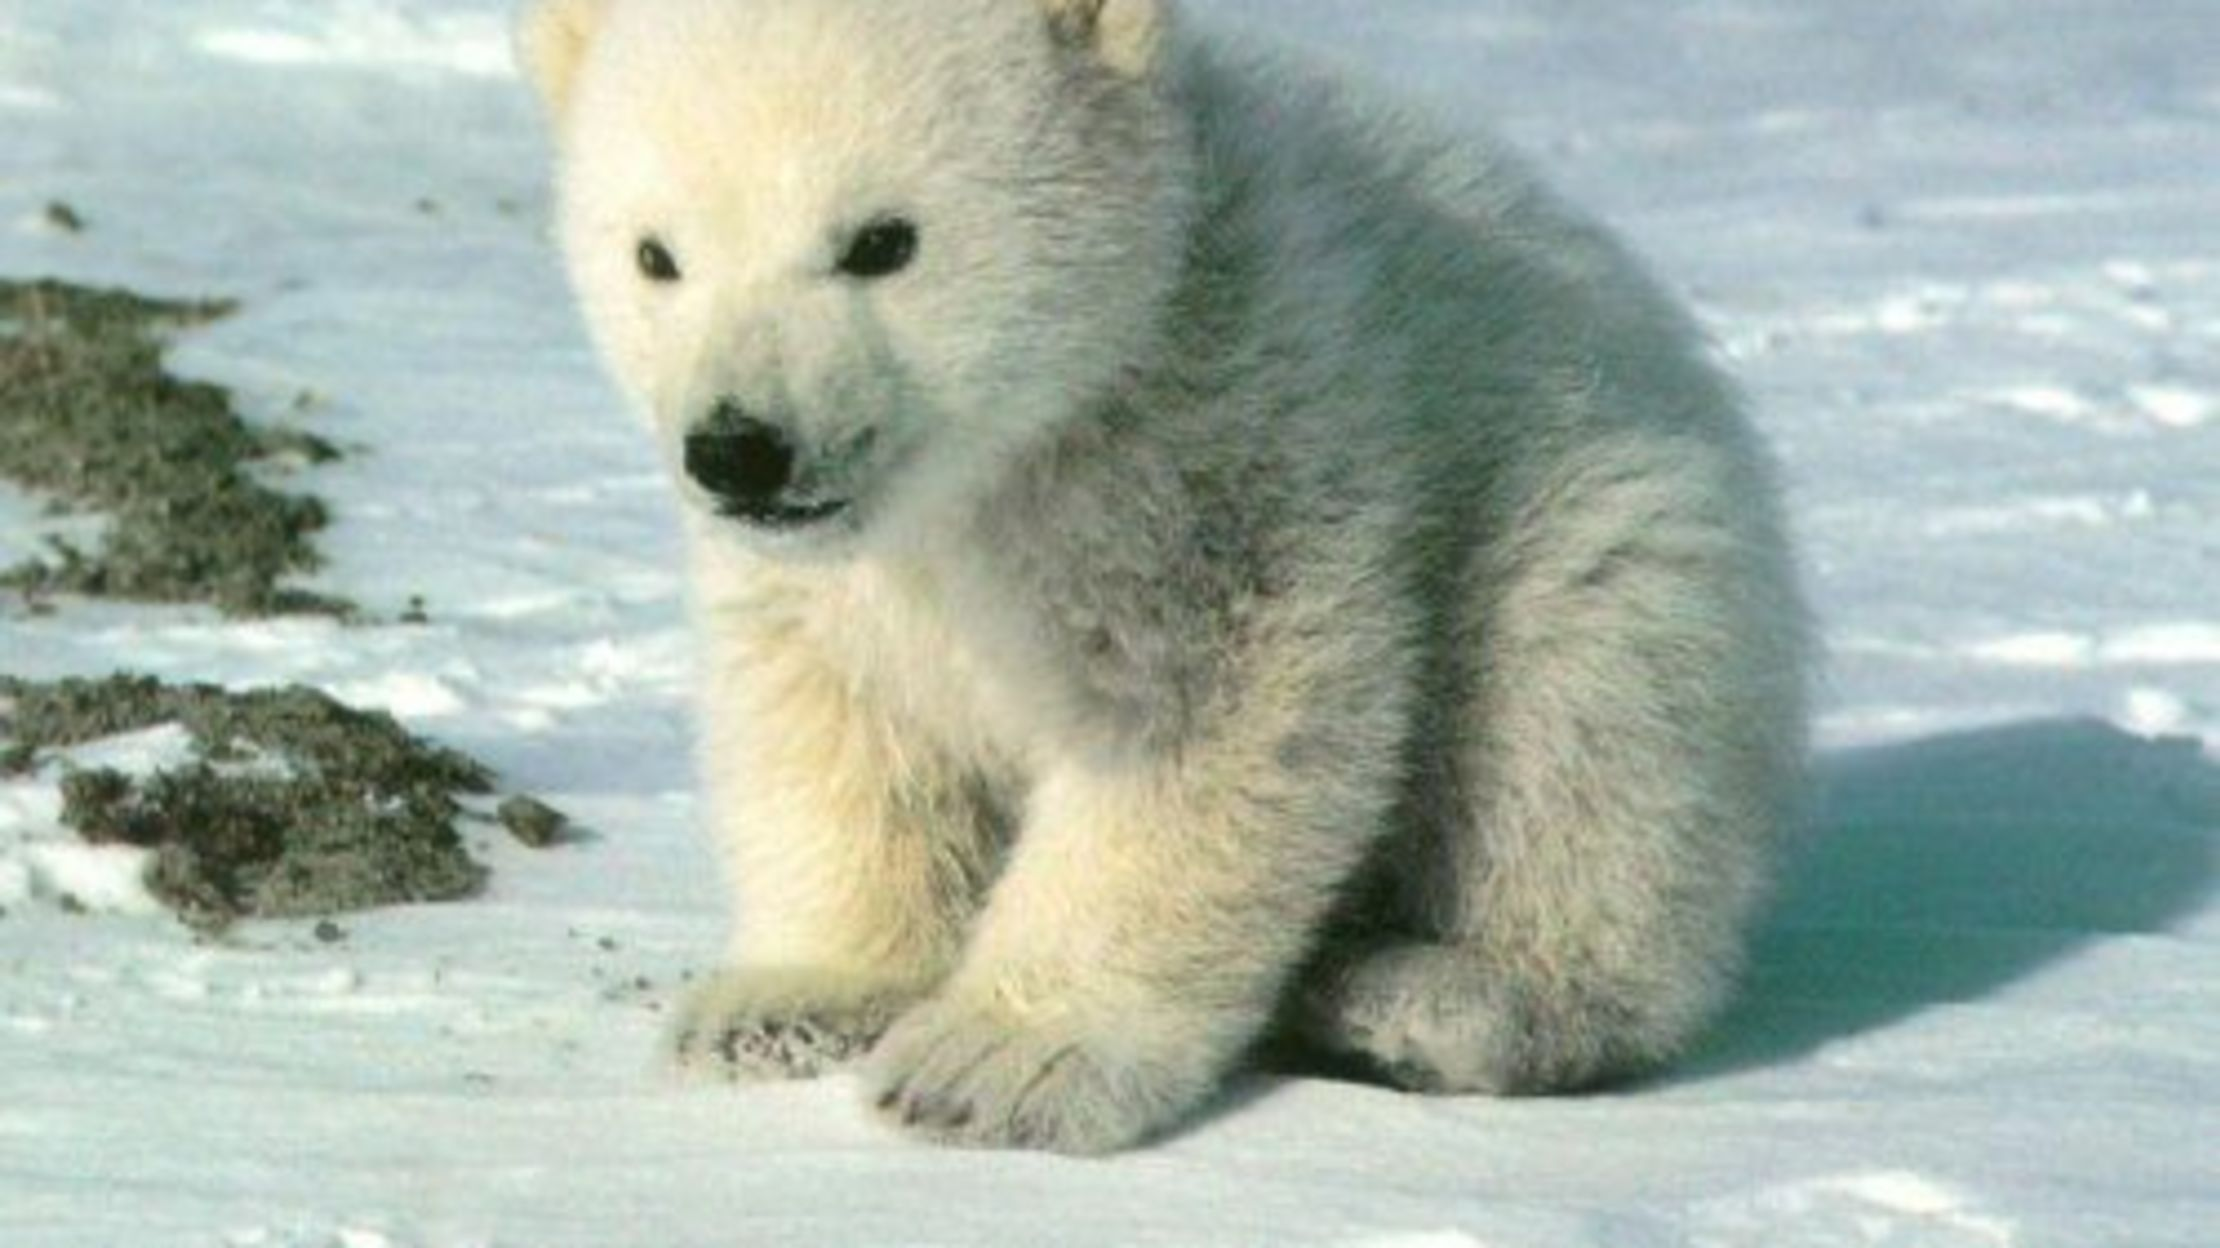 Some Things You Should Know About Polar Bears